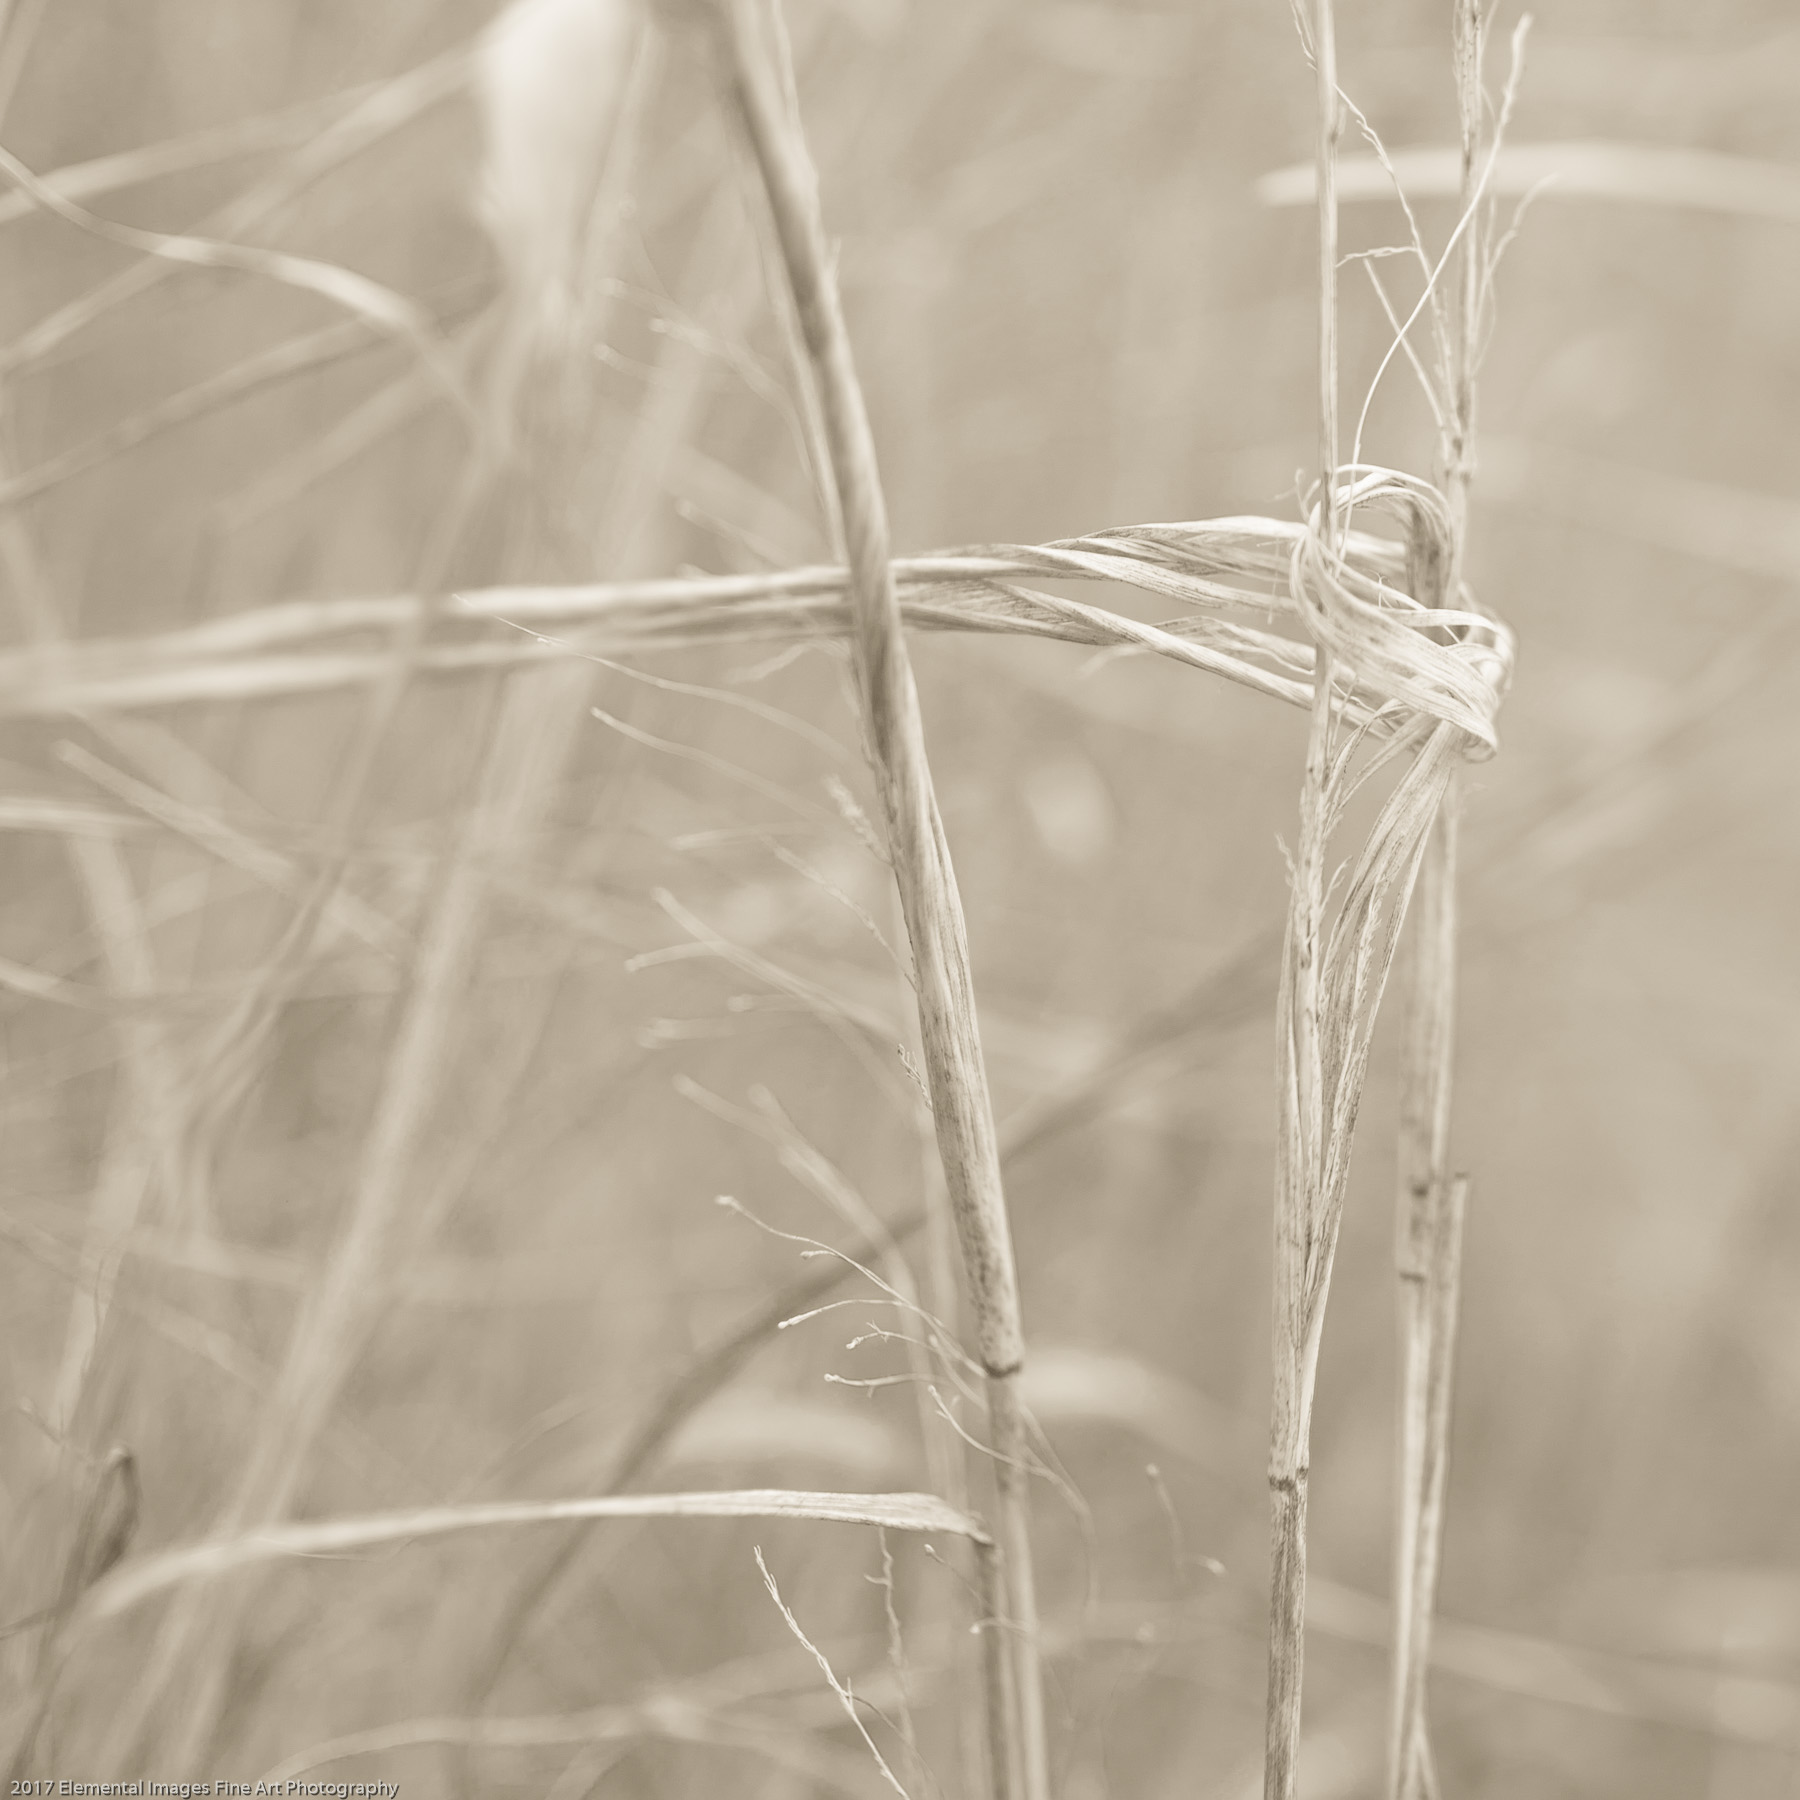 Grasses #149 | Cottonwood Canyon State Park | OR | USA - © 2017 Elemental Images Fine Art Photography - All Rights Reserved Worldwide